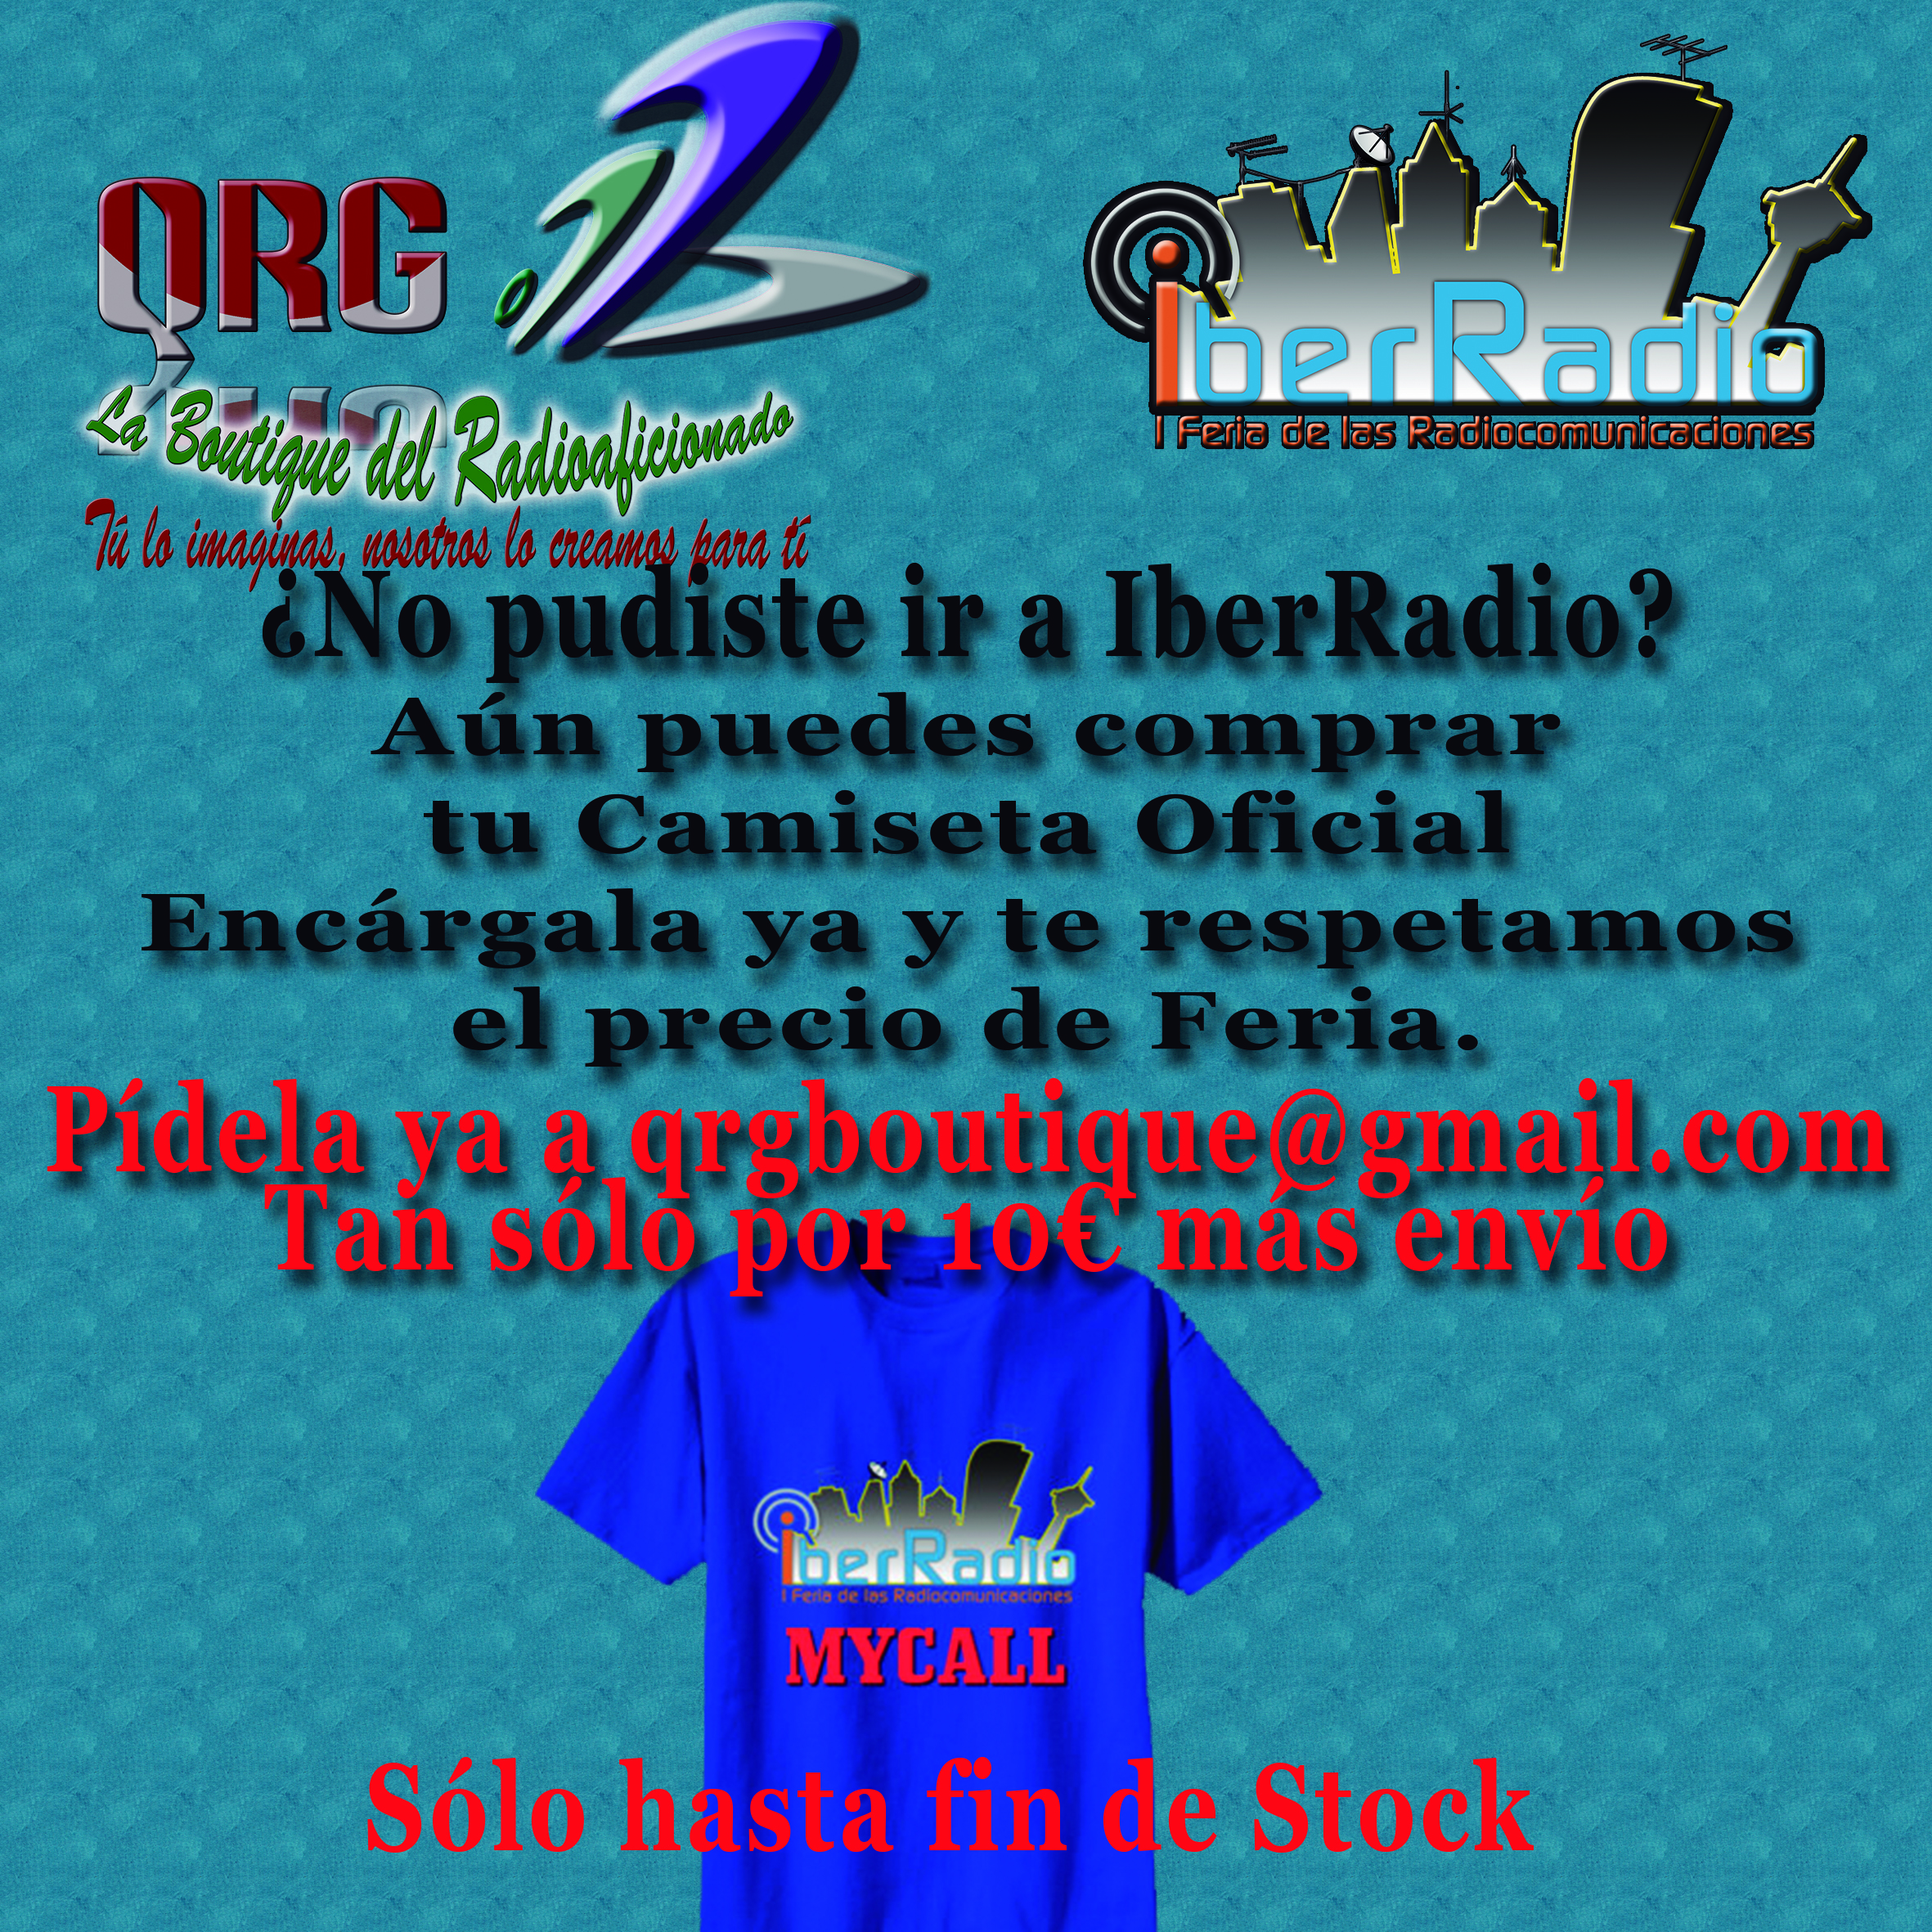 Fin Stock Camiseta IberRadio